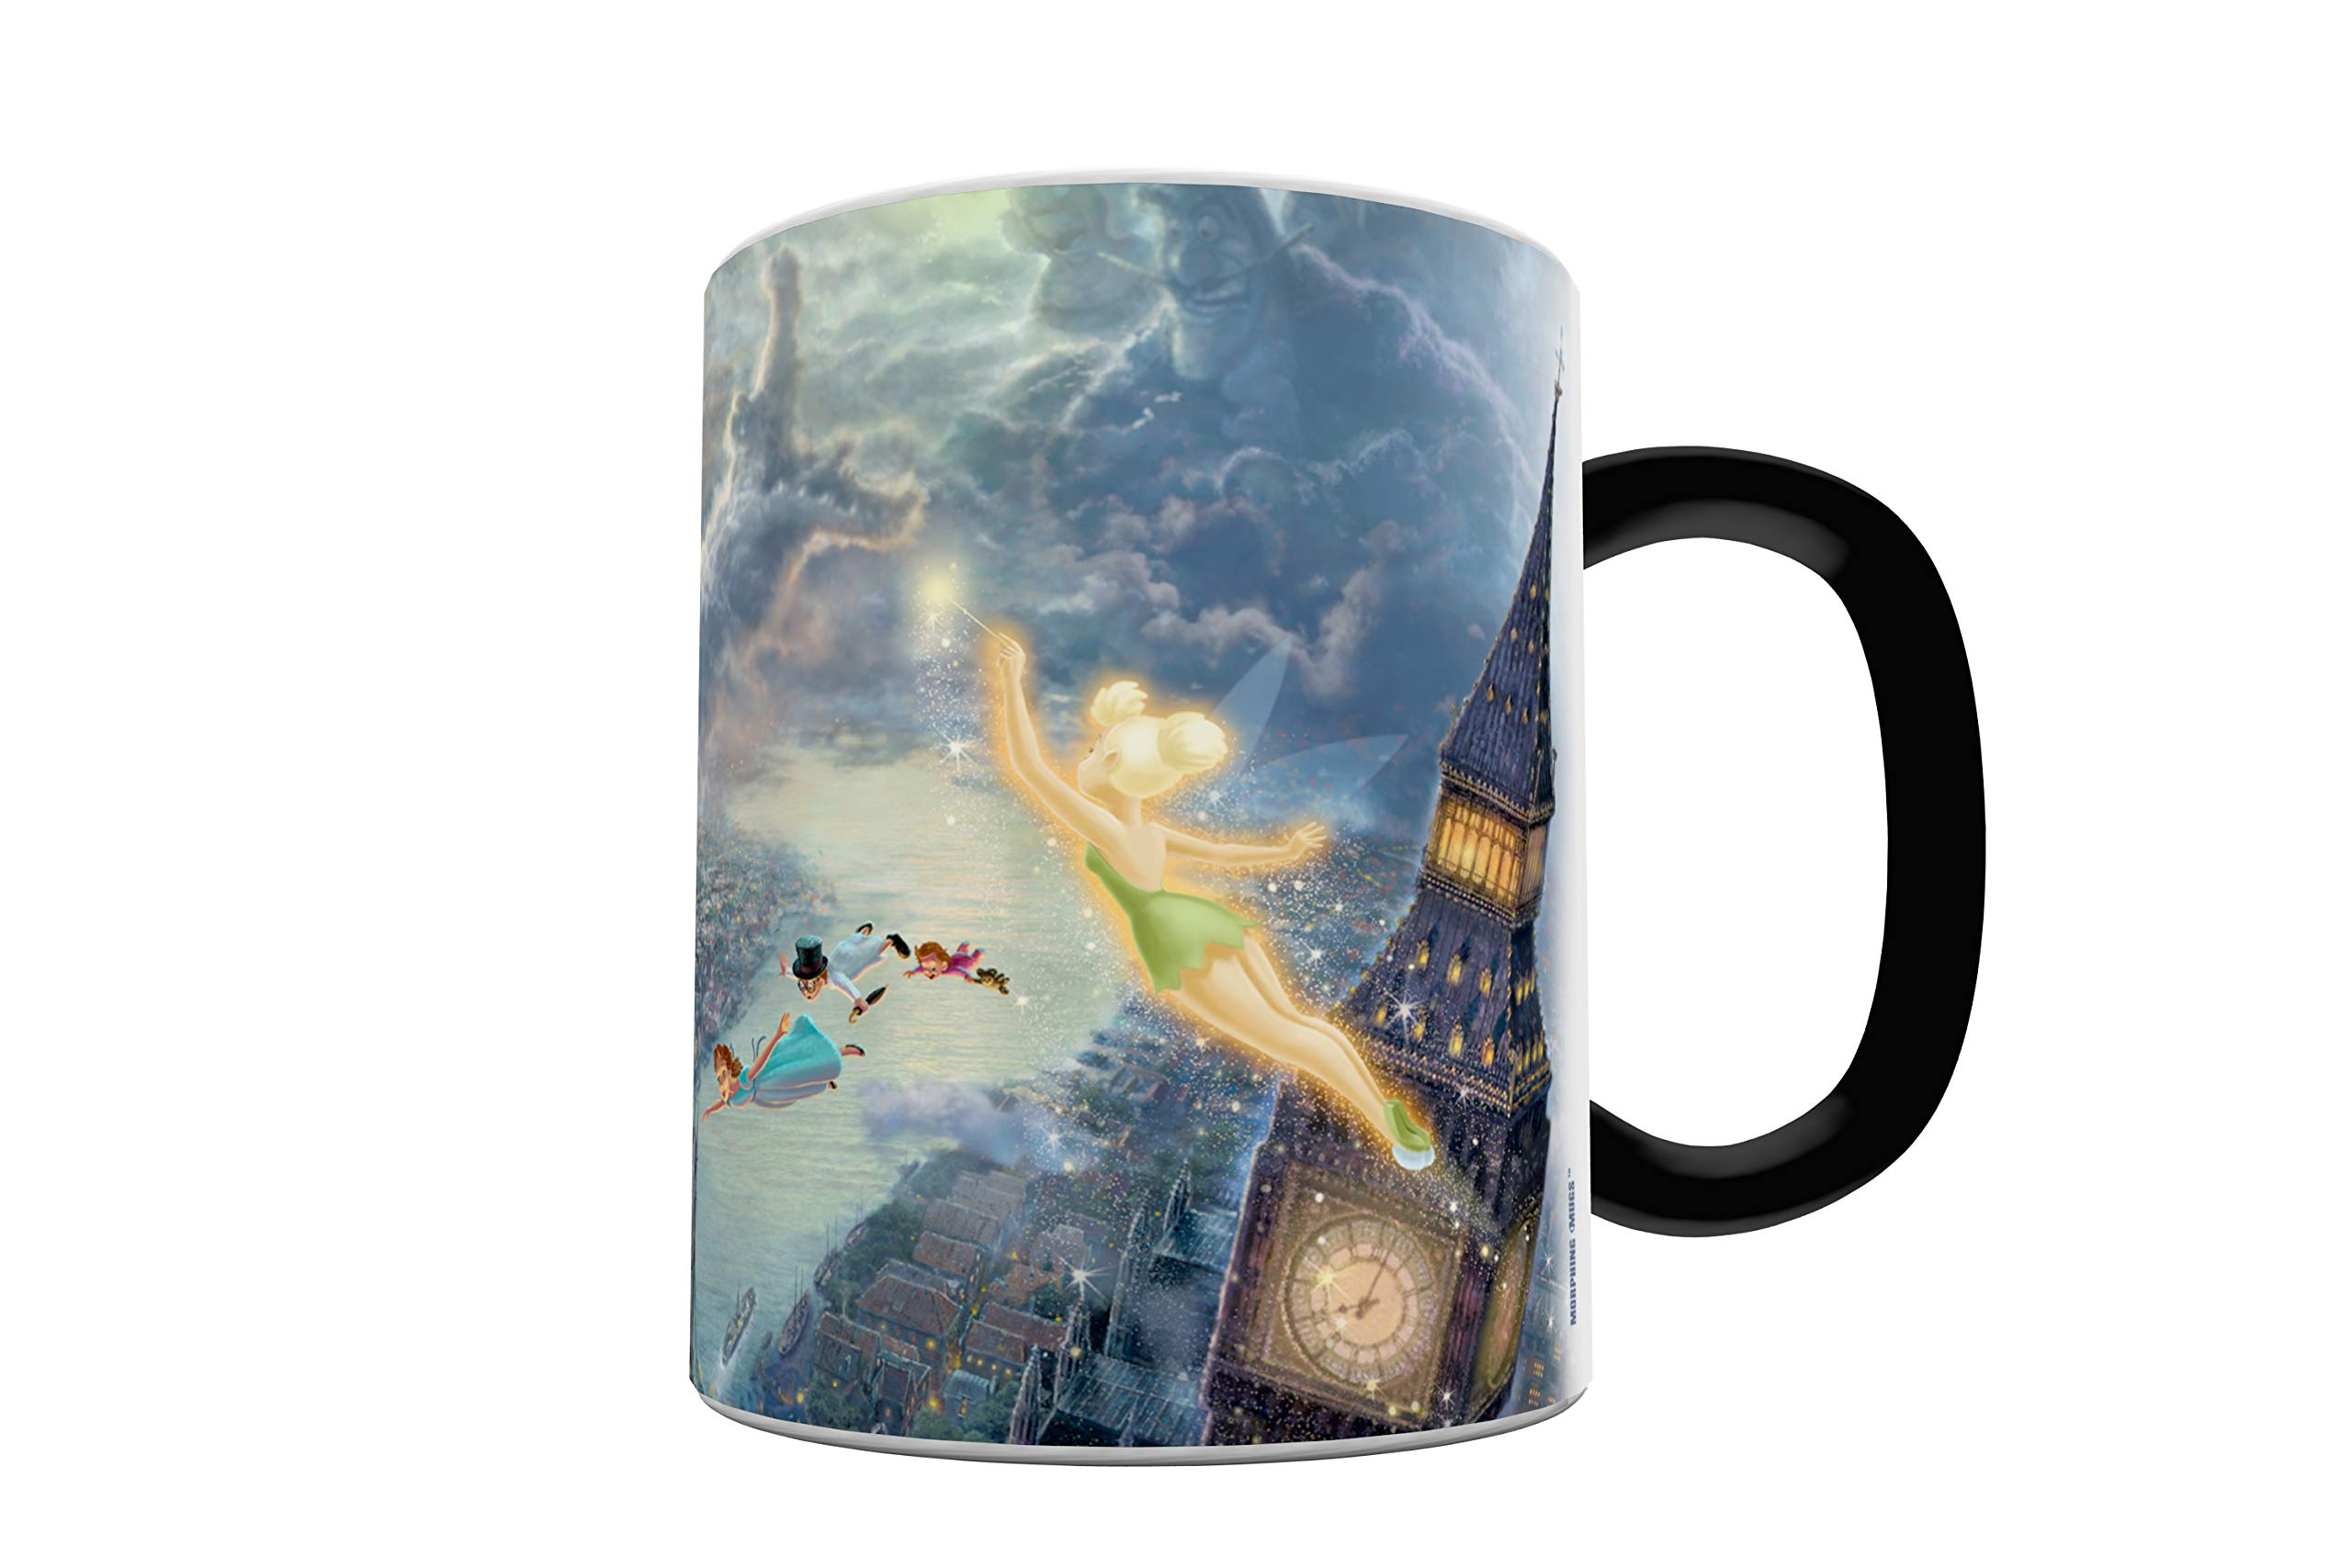 Disney - Peter Pan - Tinker Bell - Fly to Neverland - One 11 oz Morphing Mugs Color Changing Heat Sensitive Ceramic Mug – Image Revealed When HOT Liquid Is Added!